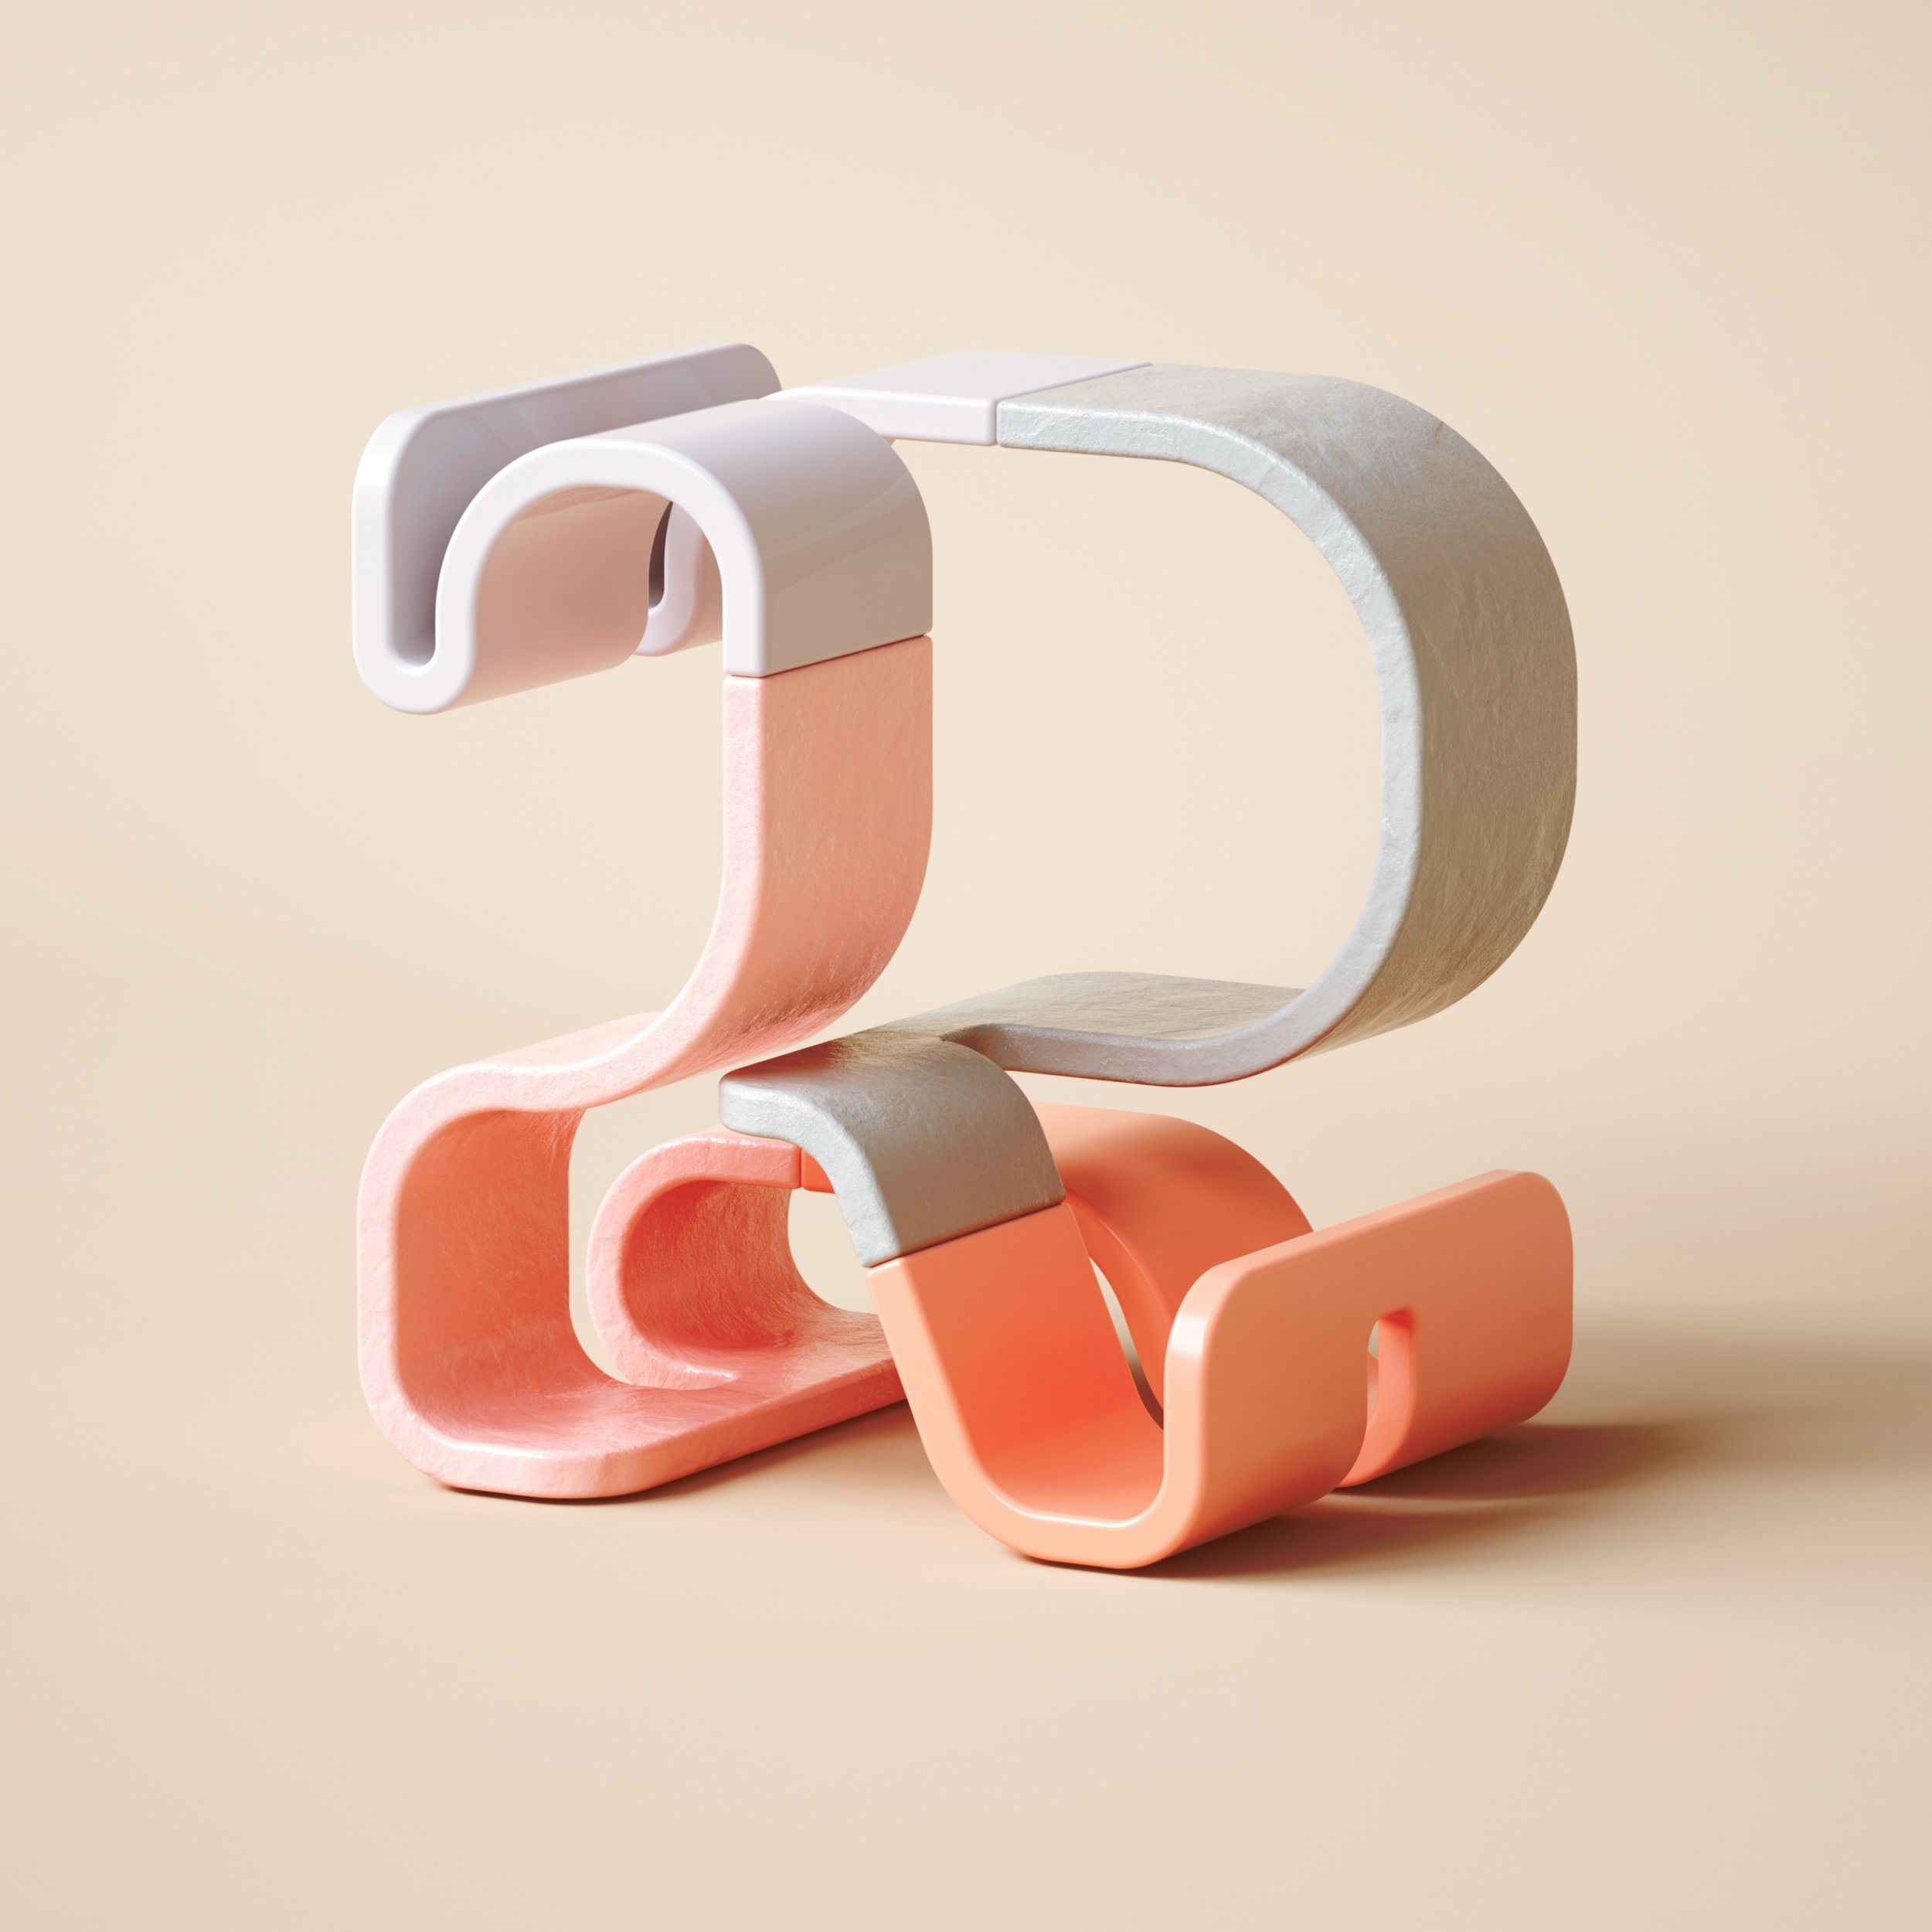 36 Days of Type 2019 - 3D Typeform number 2 visual.